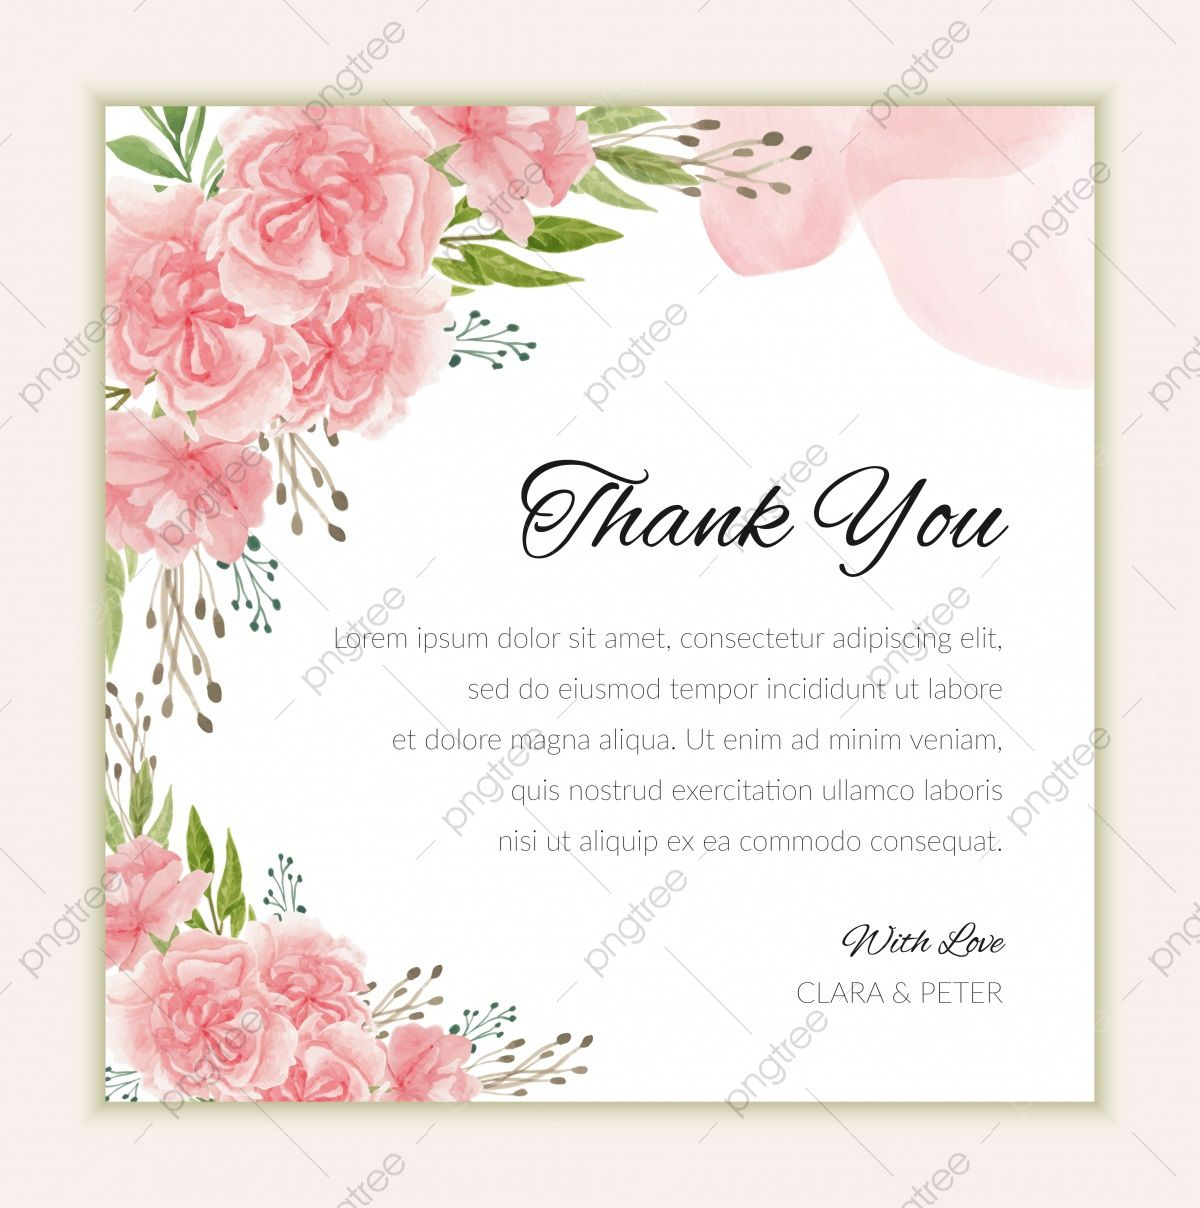 005 Exceptional Thank You Card Template Idea  Wedding Busines Word FreeFull